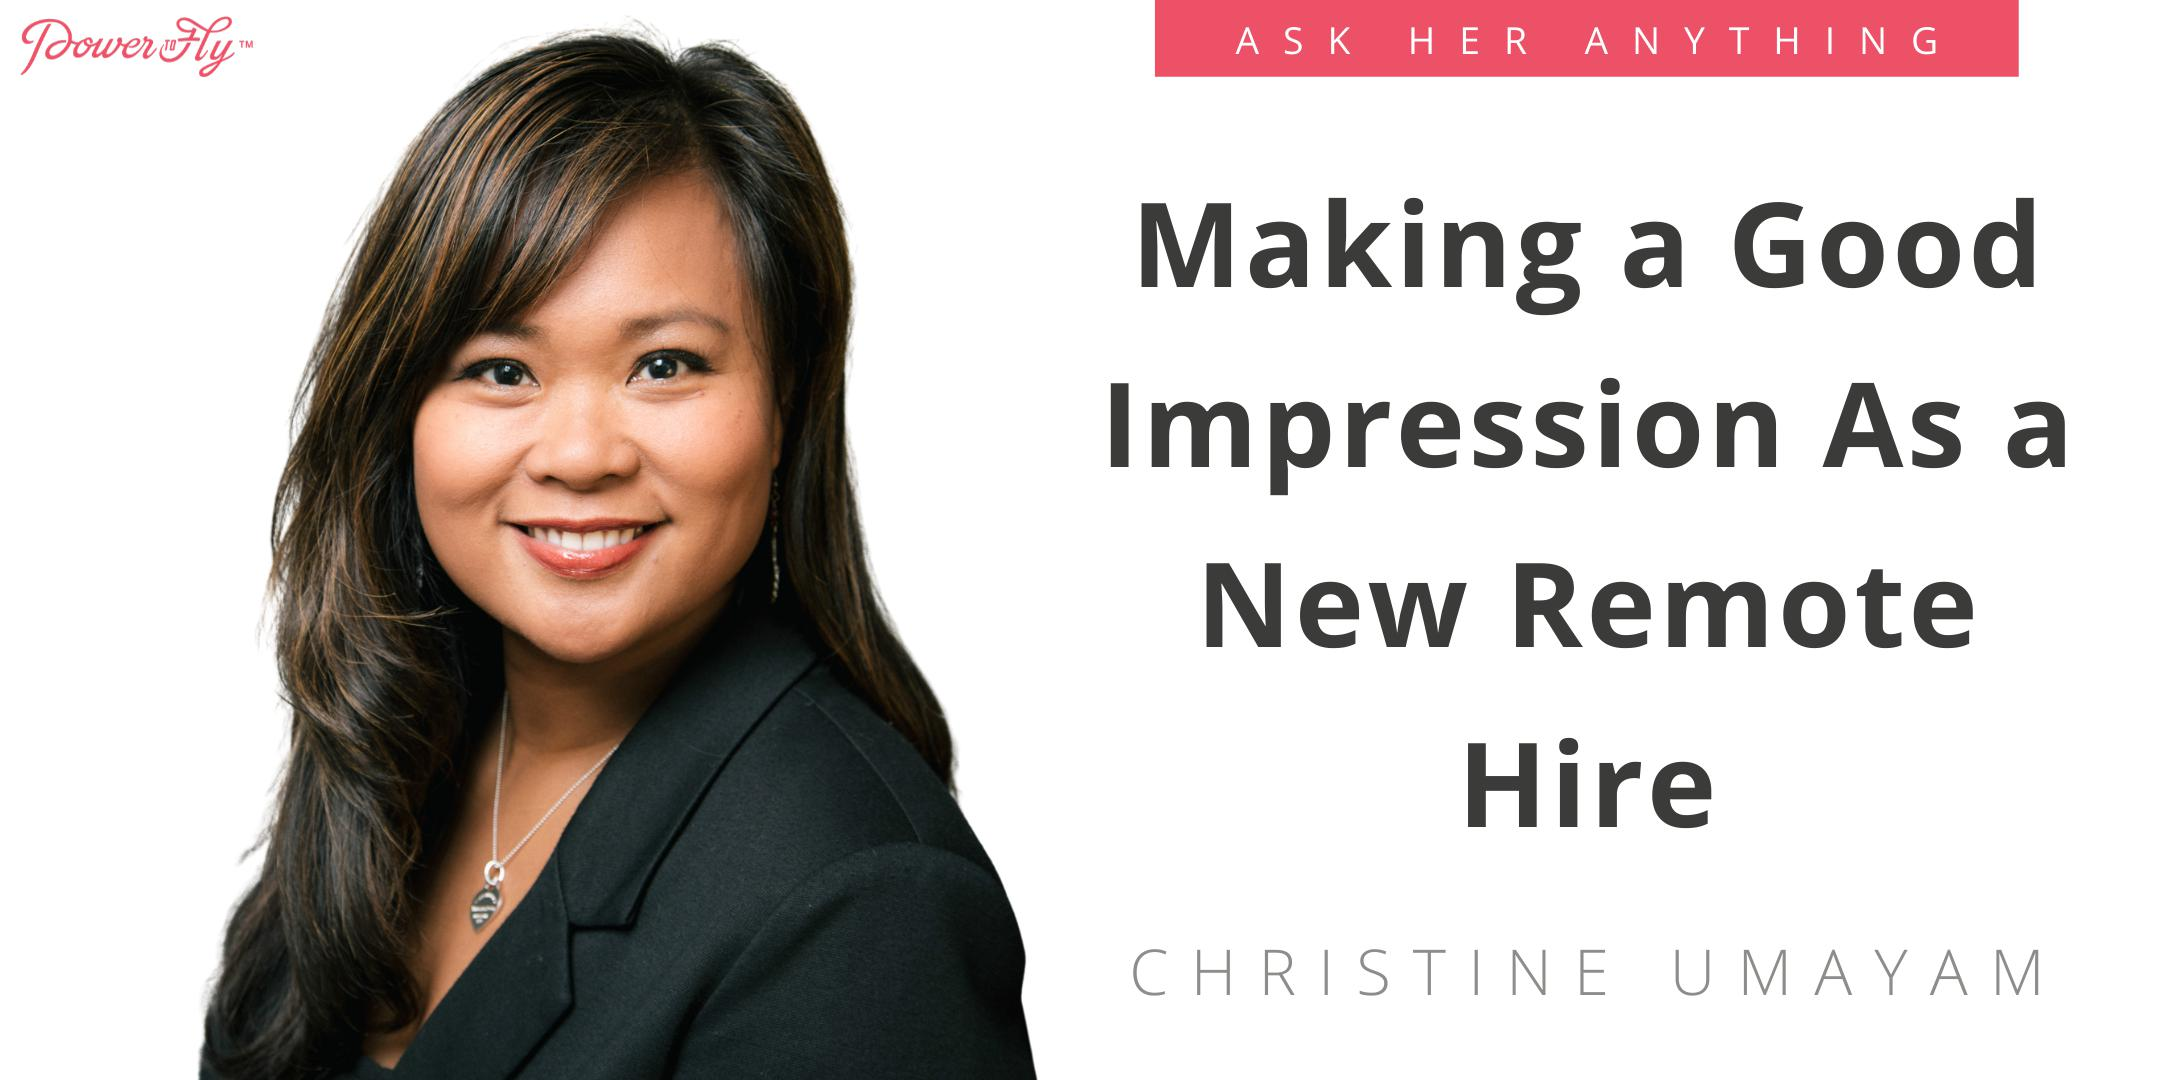 Making a Good Impression As a New Remote Hire